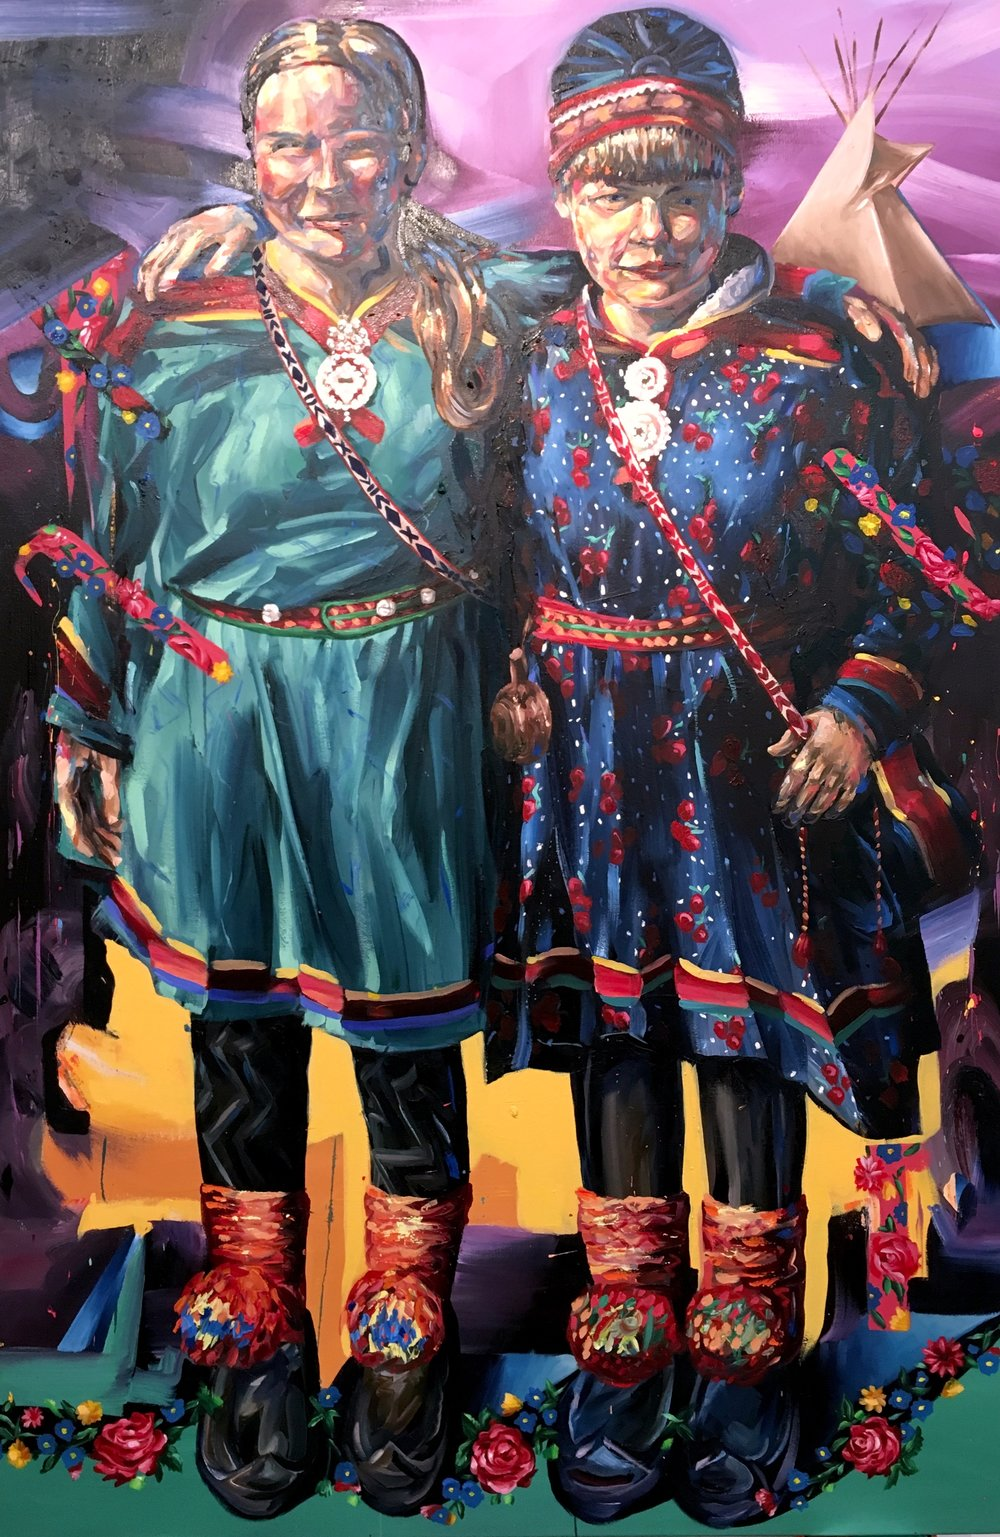 """""""Samí Solidarity""""   72"""" x 48"""" Oil on Canvas 2017  Completed to show the direct correlation between Indigenous peoples that share similar land struggles and coming together to support each other in times of need and action.  October 1st, 2016, North Dakota- these two Samí Women ( Indigenous to northern Norway, Sweden and Finland ) were departing the Oceti Sakowin Camp, resistance camp of DAPL Pipeline. I took the photo because it was a moving moment- one that echoed a beautiful reality in a landscape that was divided and shadowed a paralleled past.  We all need to unite and come together far and wide to help each other, share and show solidarity in the face of government woes- today's struggles are ever apparent in our daily lives- it's important to be reminded of the loving human spirit that exist- as an artist it's something I've found important to do and share. They are wearing traditional cloths called gákti, it is worn both in ceremonial contexts and while working, particularly when herding reindeer. The traditional Sami outfit is characterized by a dominant color adorned with bands of contrasting colors, embroidery, tin art, and often a high collar. In the Norwegian language the garment is called a 'kofte'."""